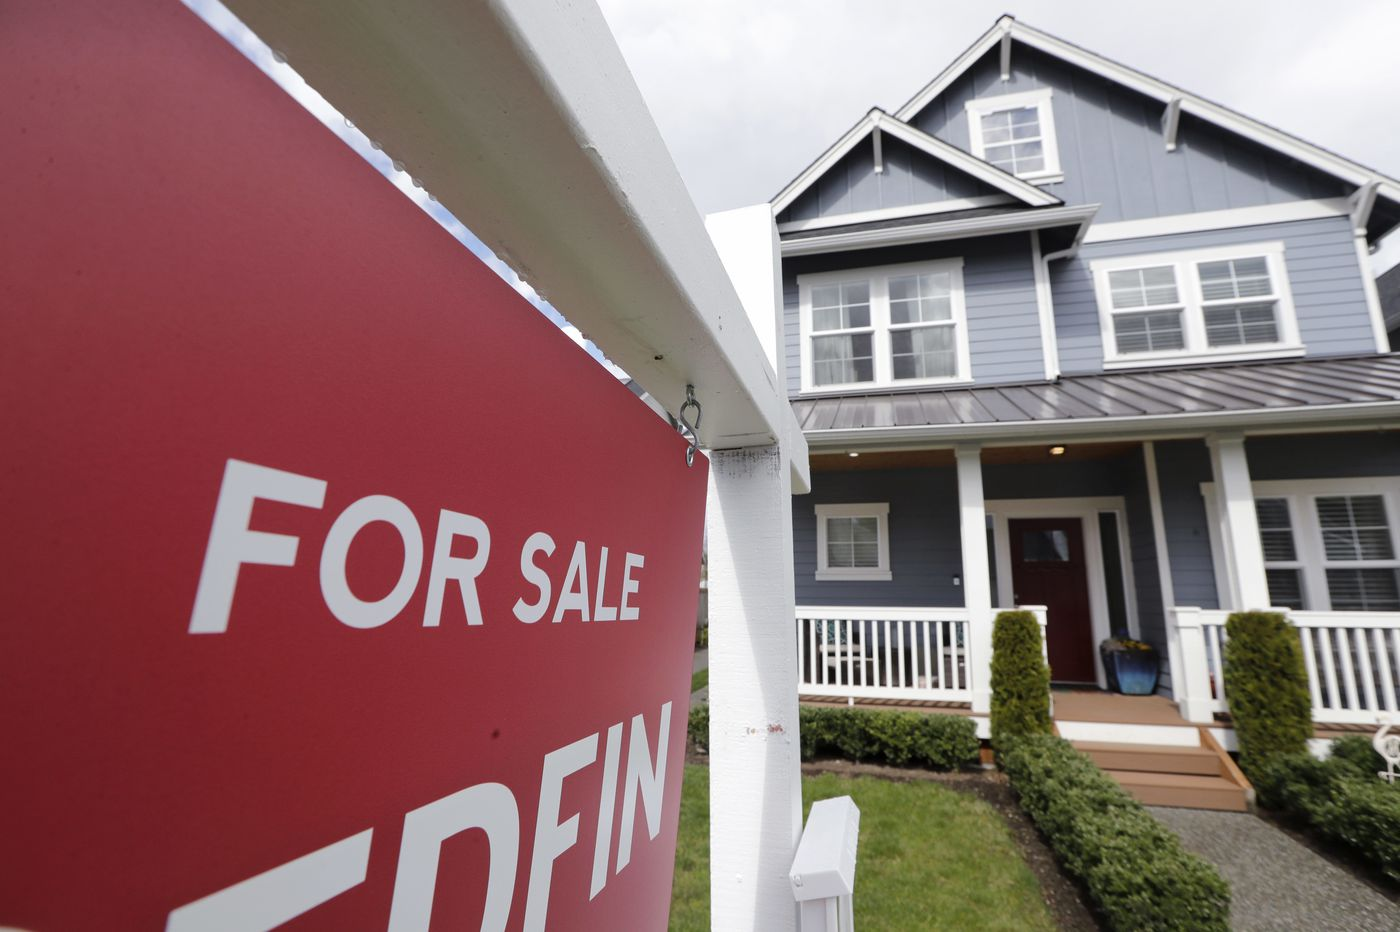 Gov. Wolf plans to veto a bill to reopen real estate throughout Pennsylvania